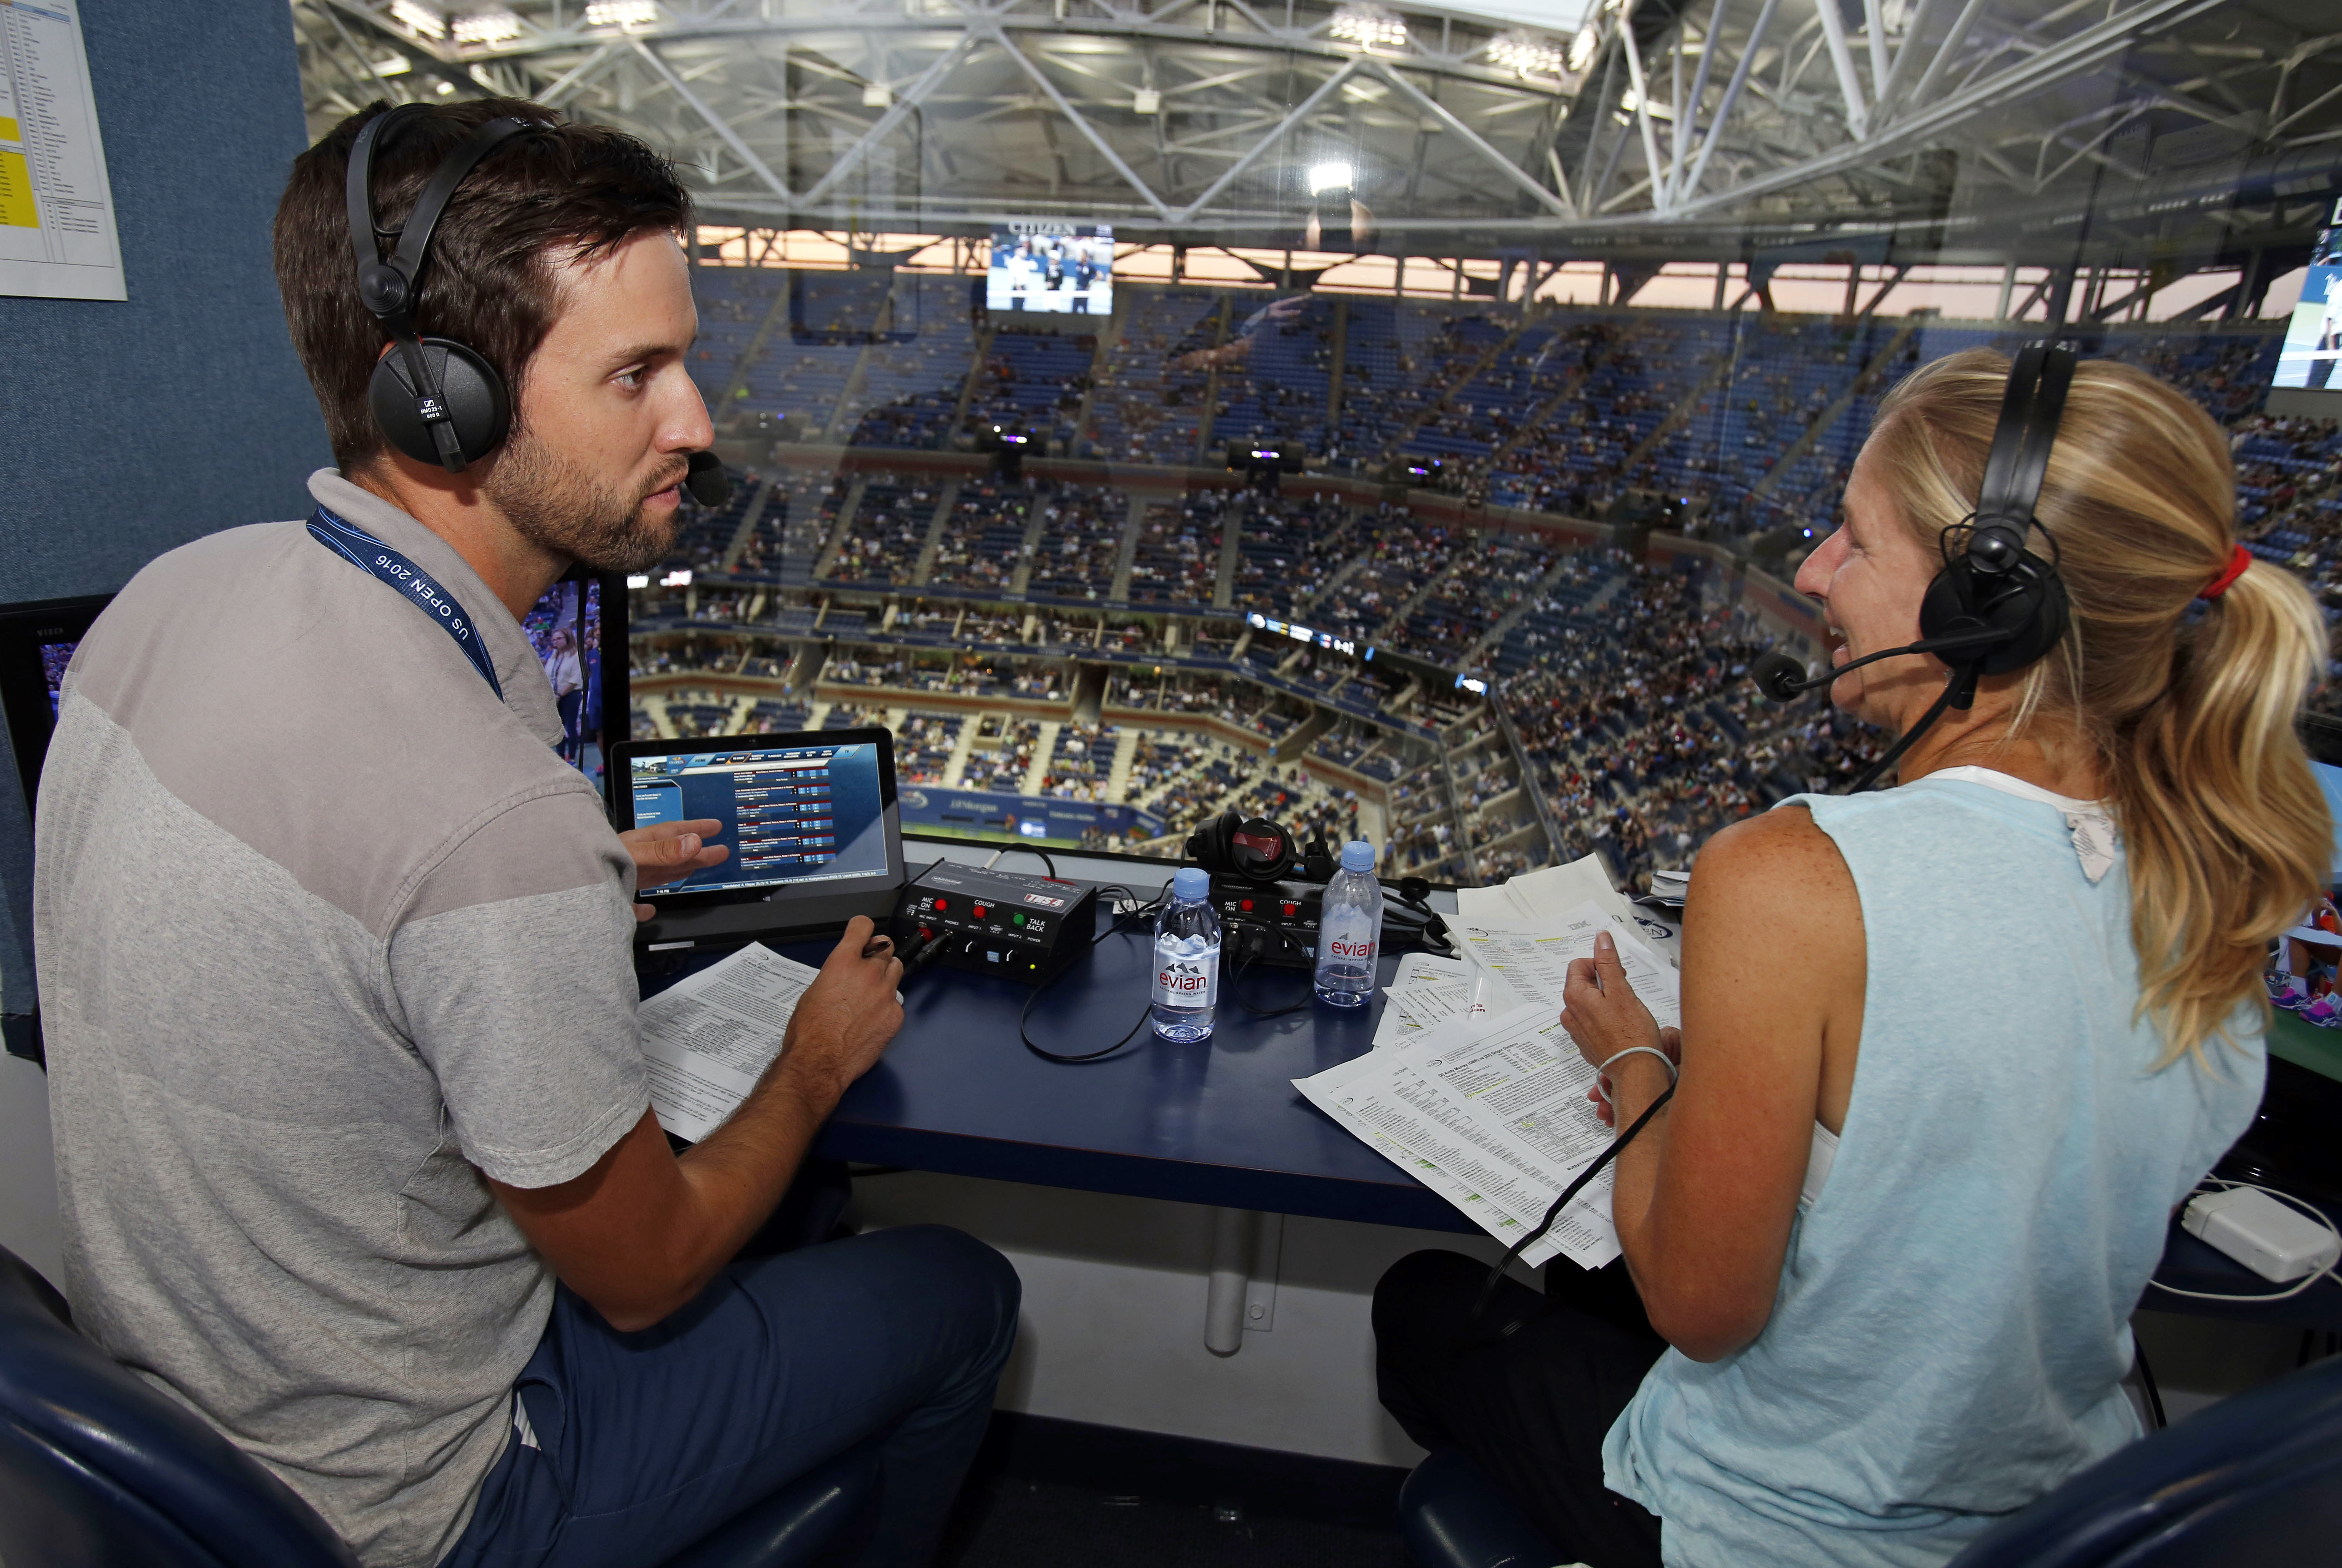 In this Monday, Sept. 5, 2016 photo, U.S. Open Radio broadcasters Brian Clark, left, and Jill Craybas talk during the fourth round of the tennis tournament in New York. Nearly 400 organizations from around the world are covering this year's U.S. Open, yet